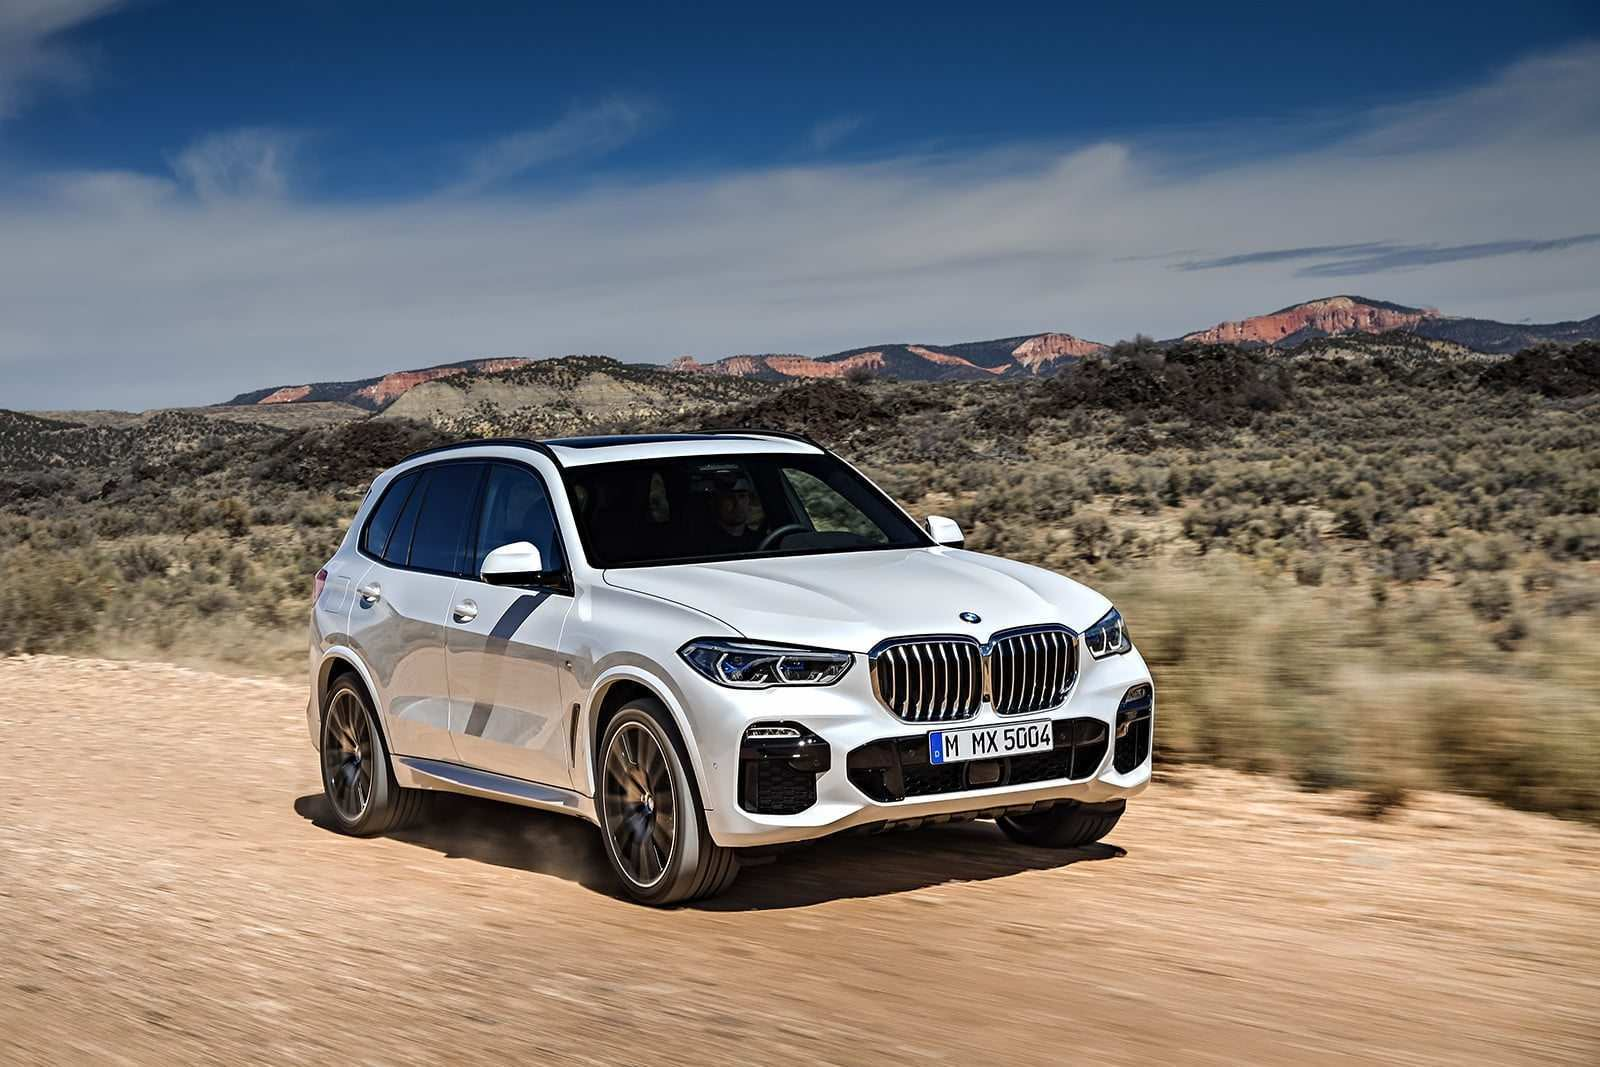 29 New 2019 Bmw Truck Pictures Release for 2019 Bmw Truck Pictures